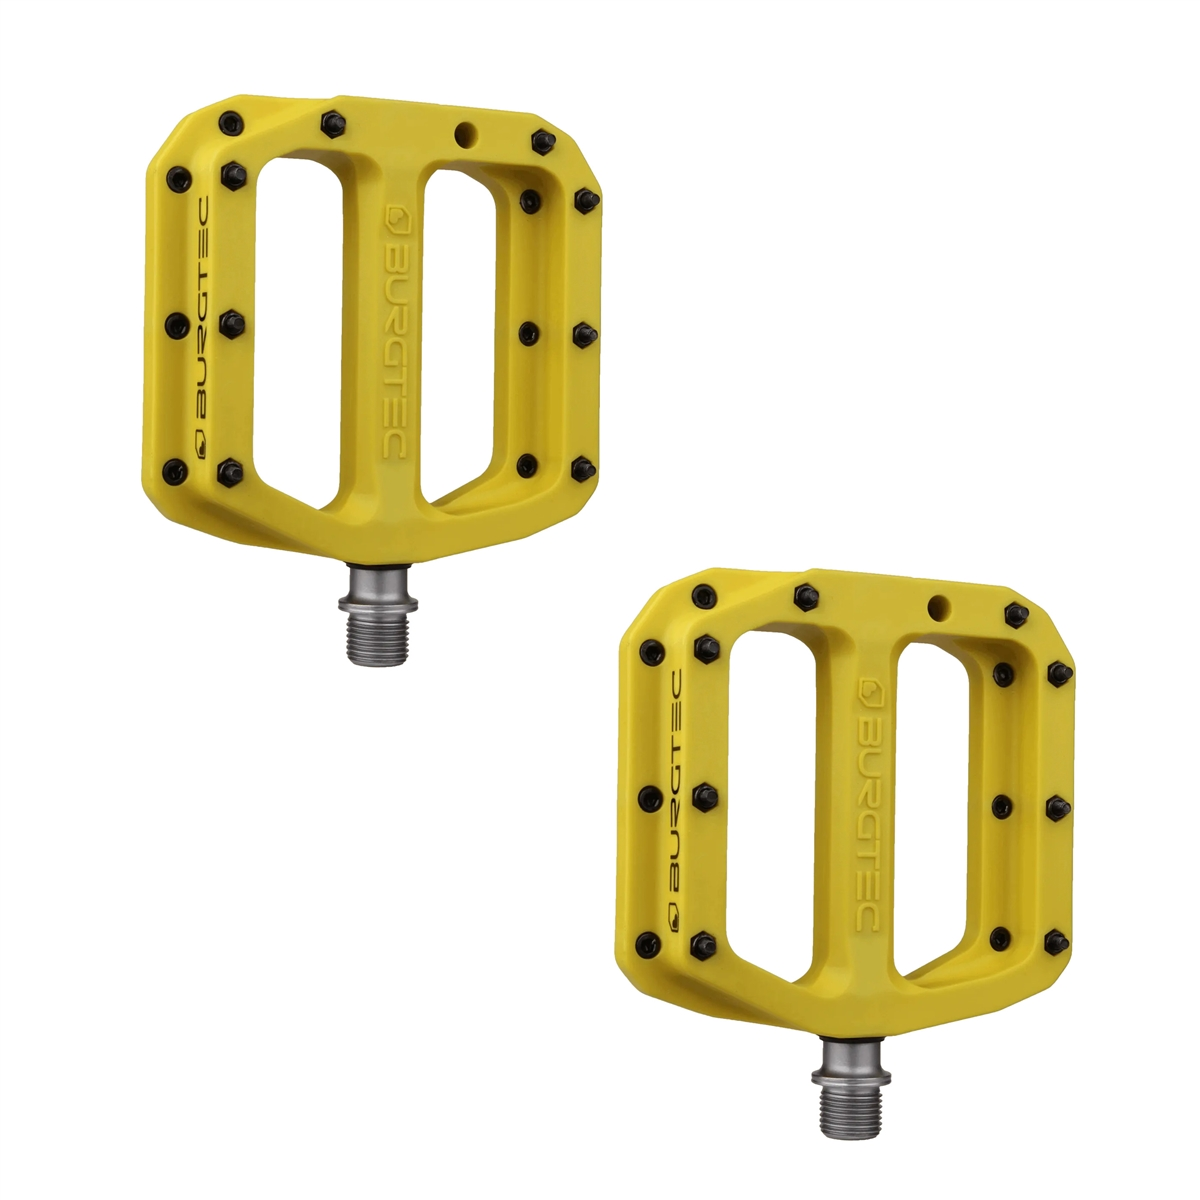 Flat Pedals Set MK4 Composite 1508 Yellow